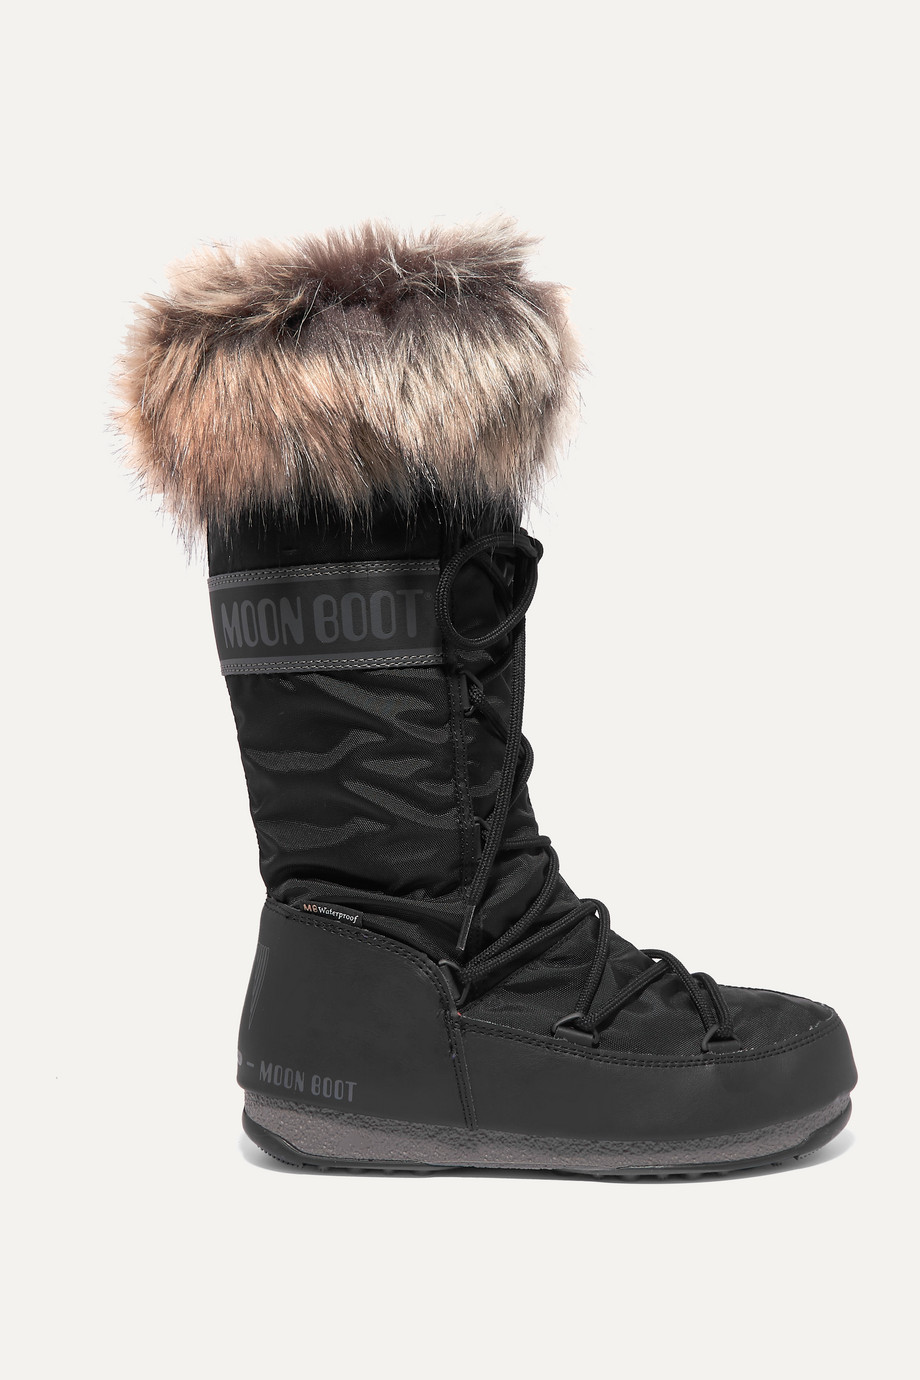 MOON BOOT Monaco faux fur-trimmed shell snow boots